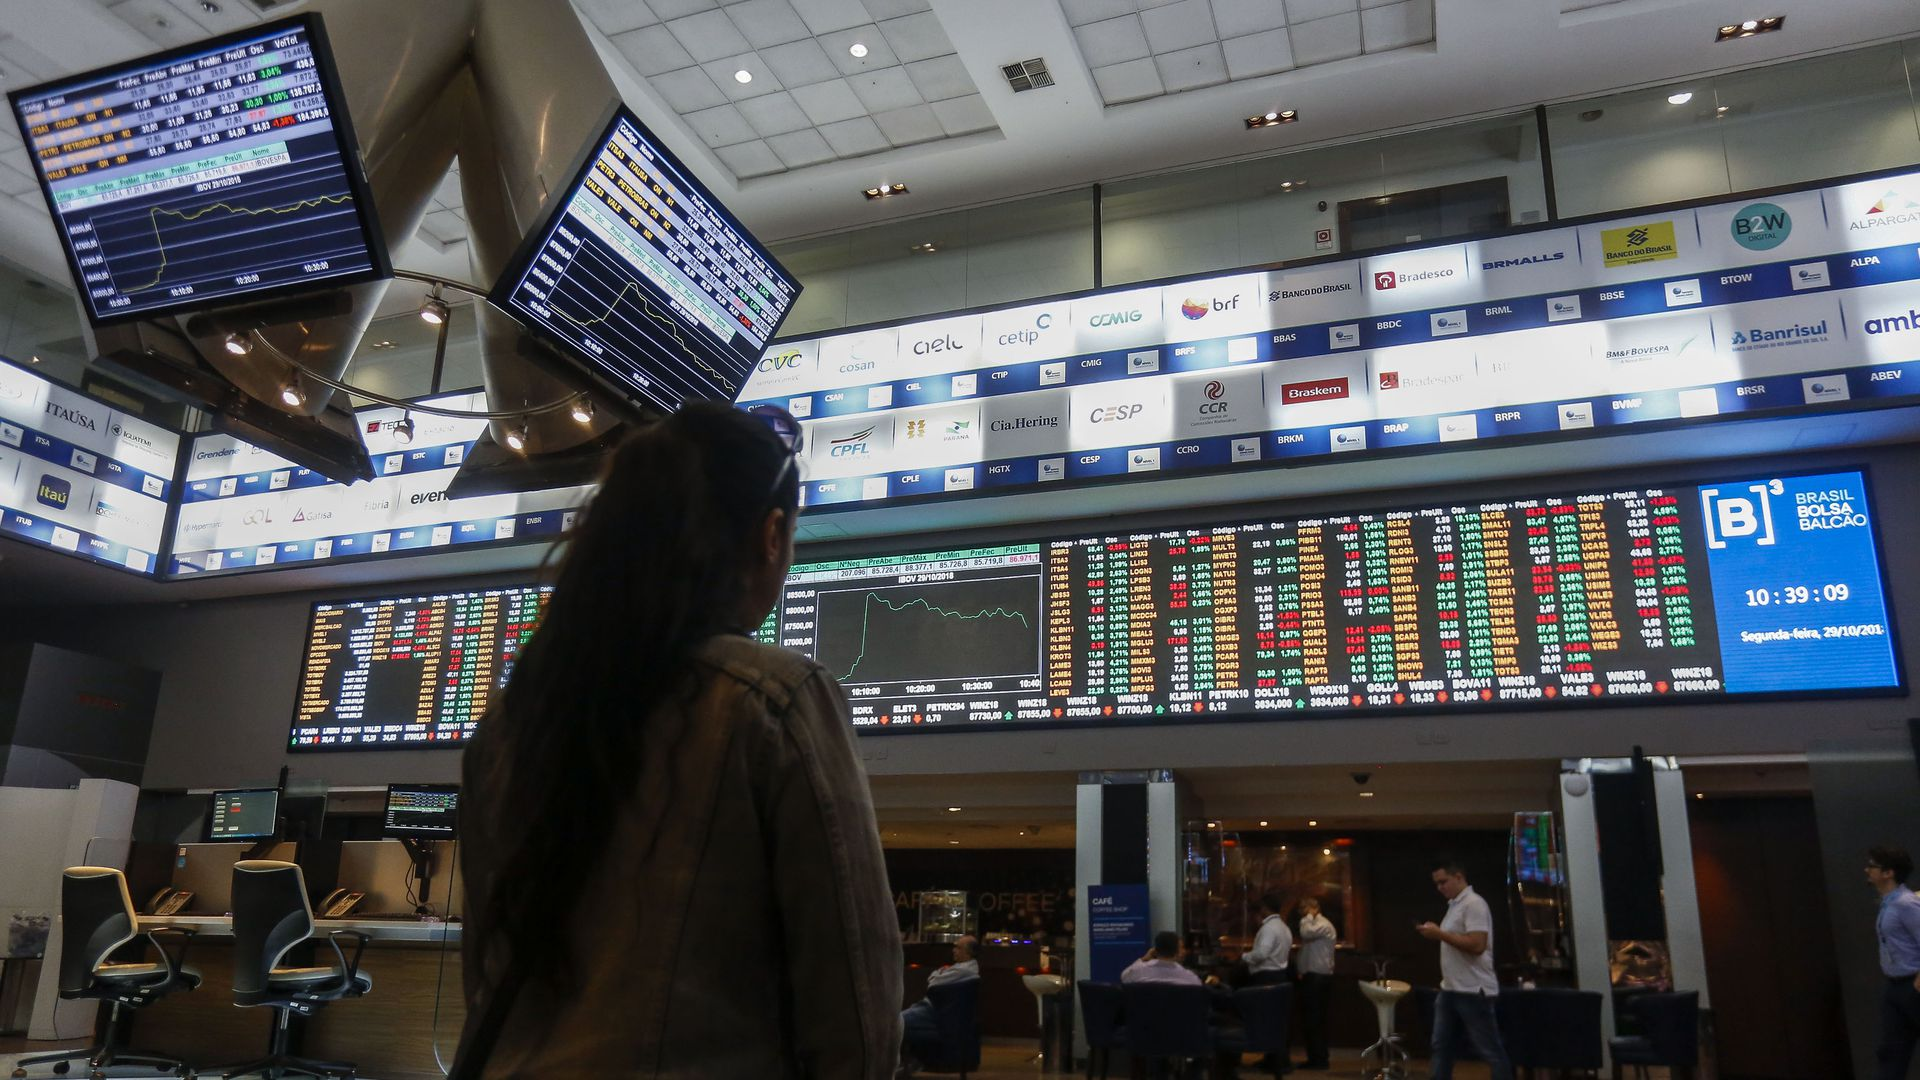 Picture taken at Sao Paulo's Stocks Exchange (Bovespa) headquarters in downtown Sao Paulo, Brazil on October 29, 2018.